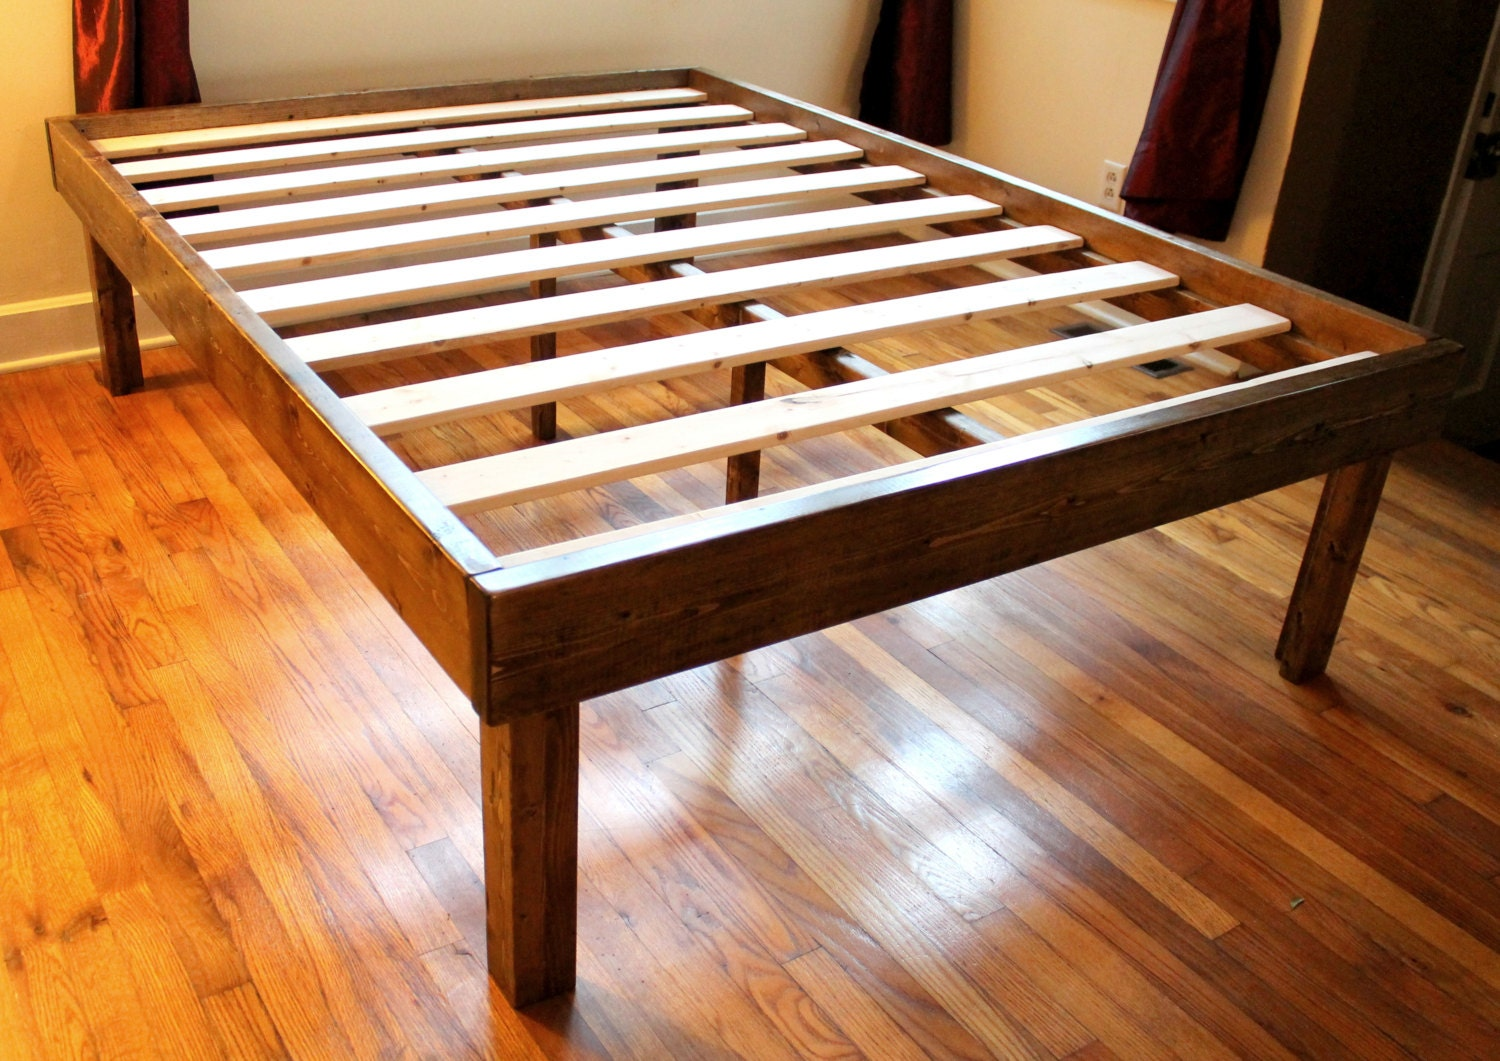 Rustic Wood Minimalist Bed Frame Twin Full Queen King: rustic bed frames